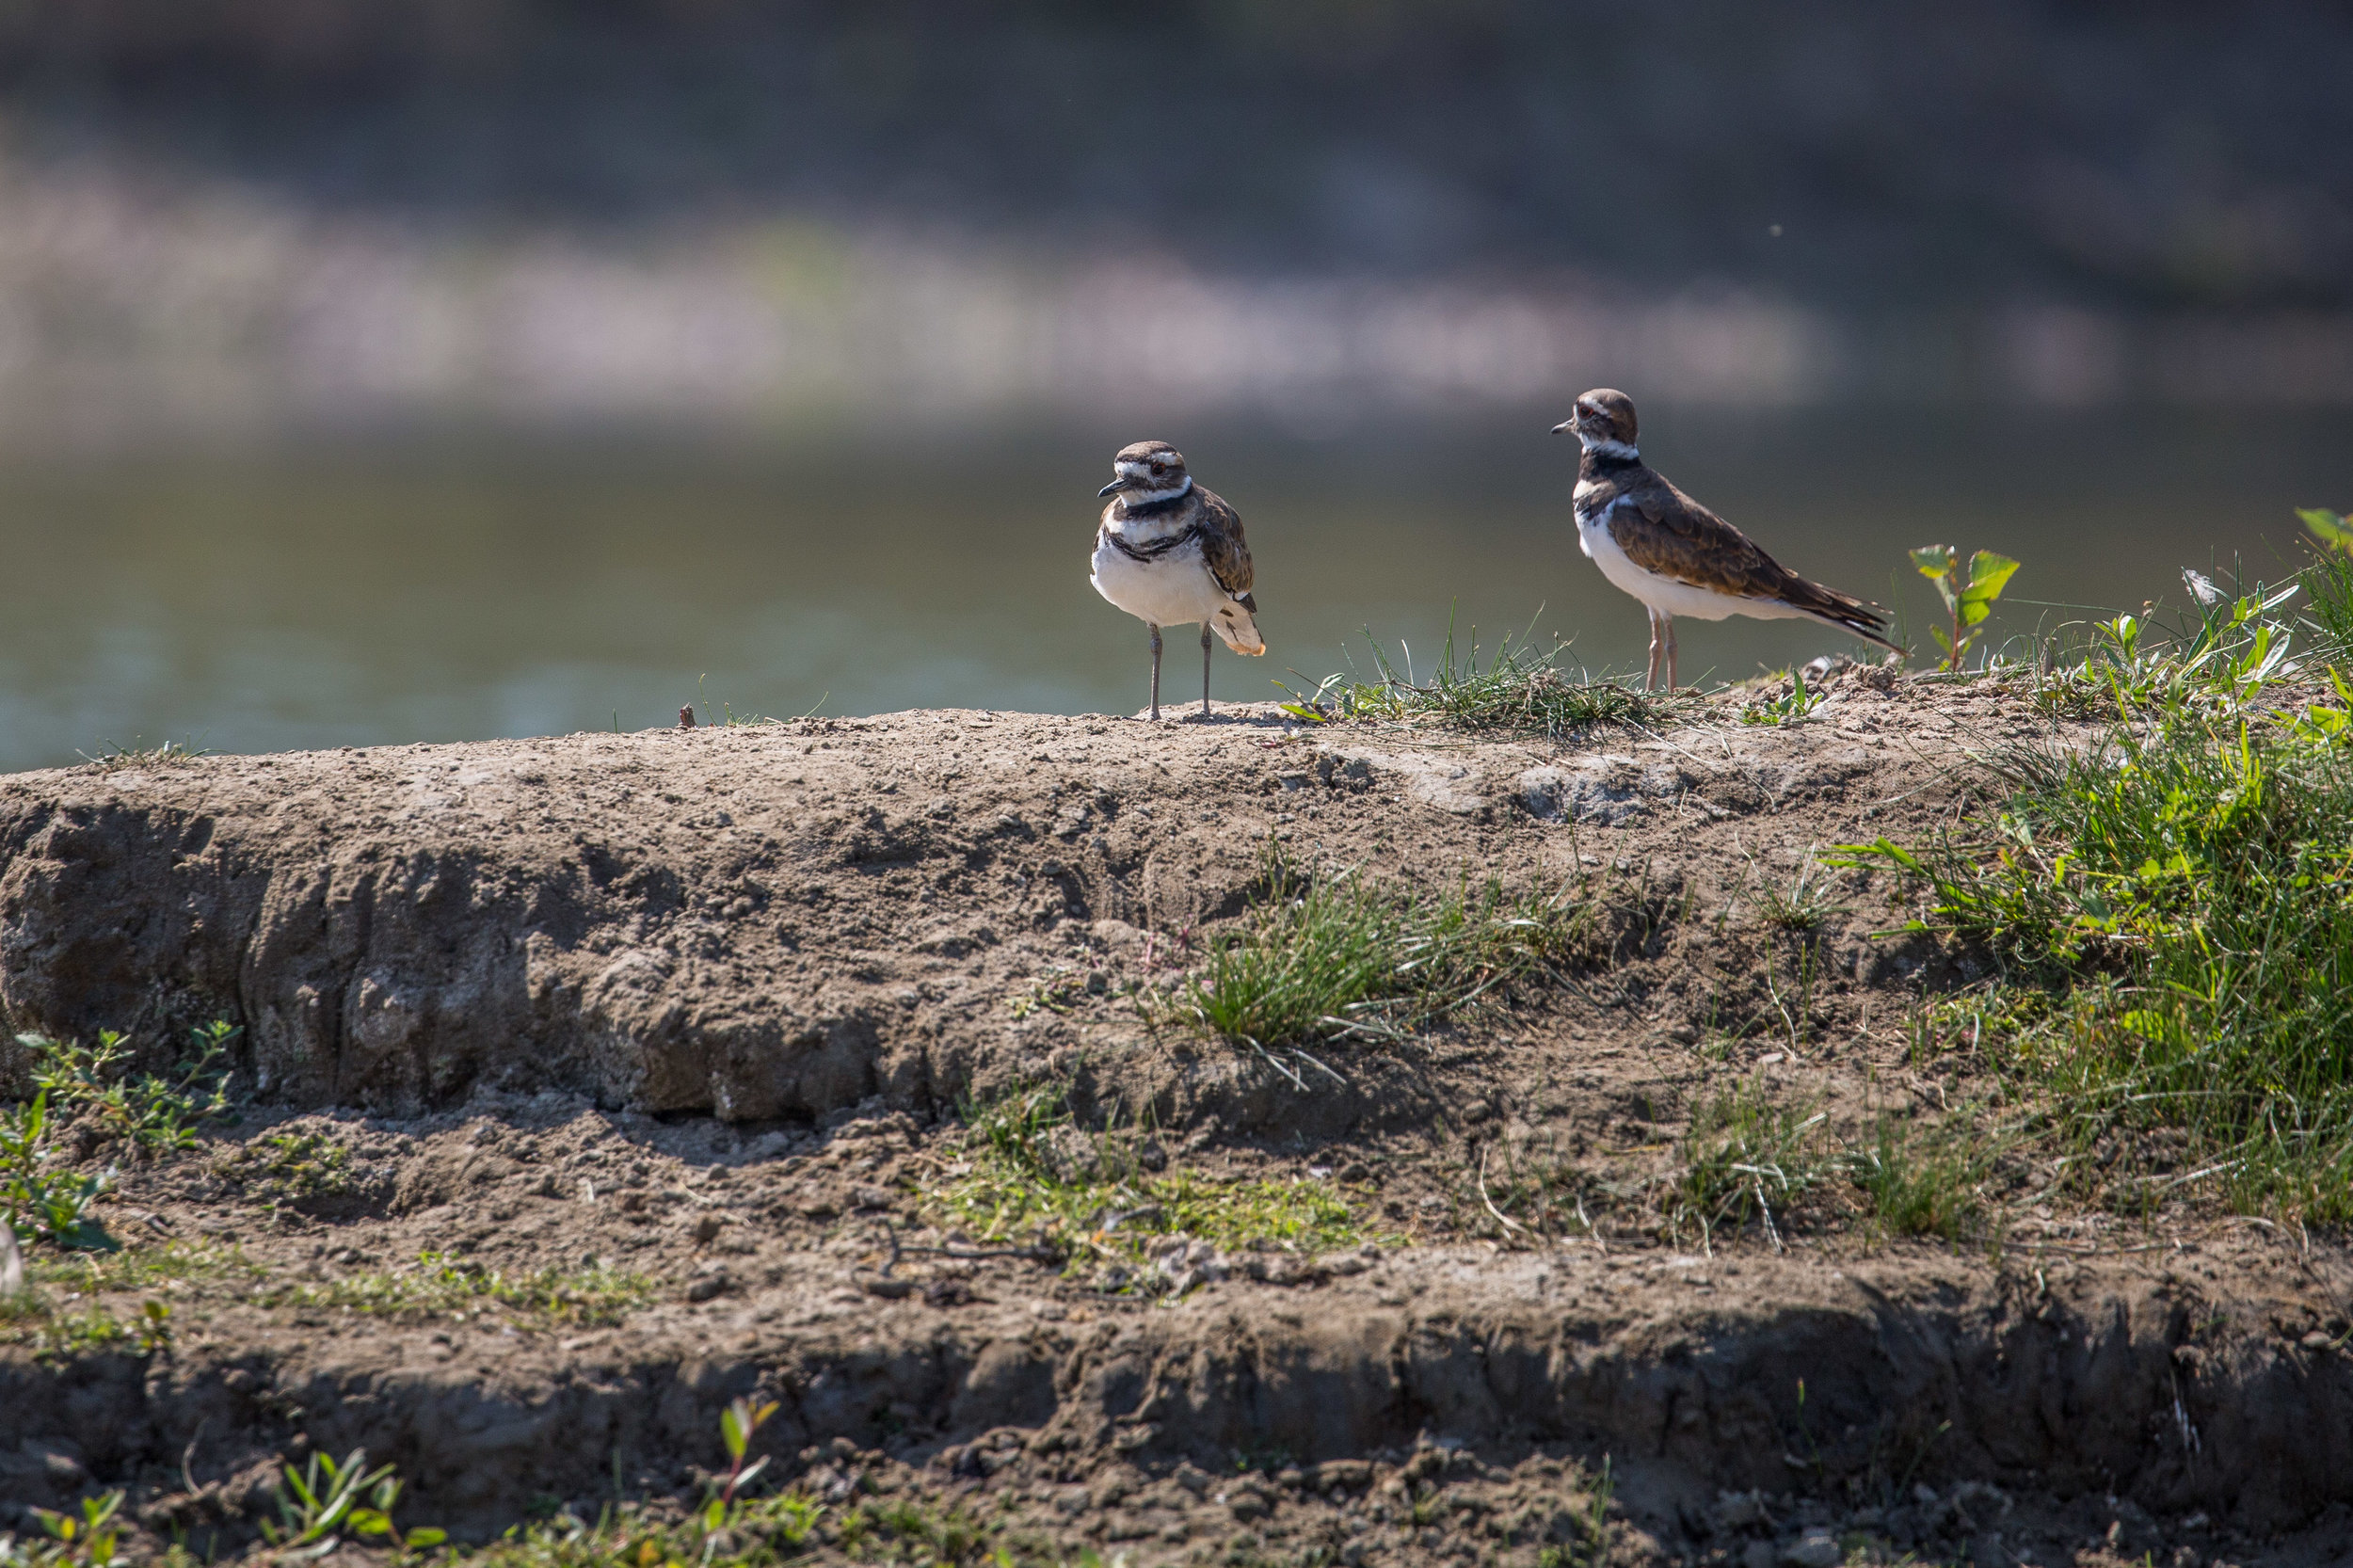 killdeer (Charadrius vociferus) - A pair of killdeer along the banks of a small island in the Upper Missouri River. This species of plover is known for its acting skills: when a threat approaches, it will act as if its wing is broken to distract the predator away from the nest.